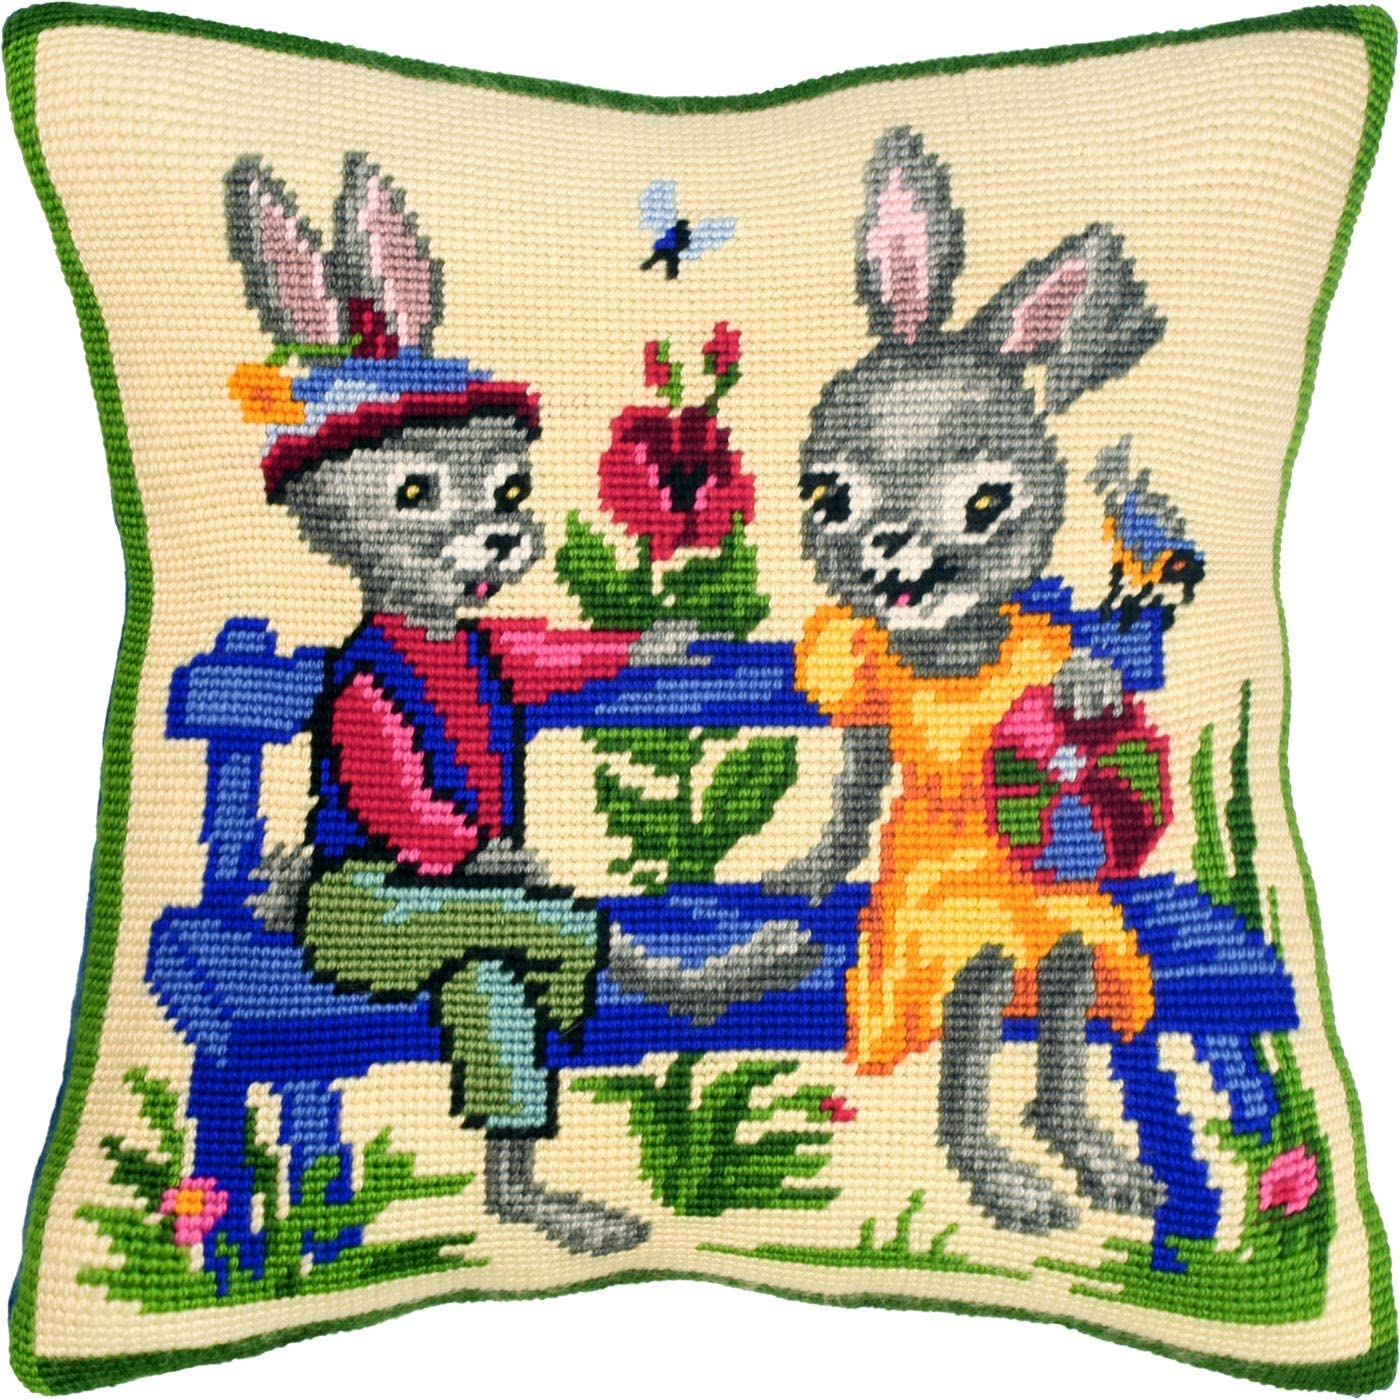 European Quality Printed Tapestry Canvas Needlepoint Kit Rabbits The Farmers Throw Pillow 16/×16 Inches